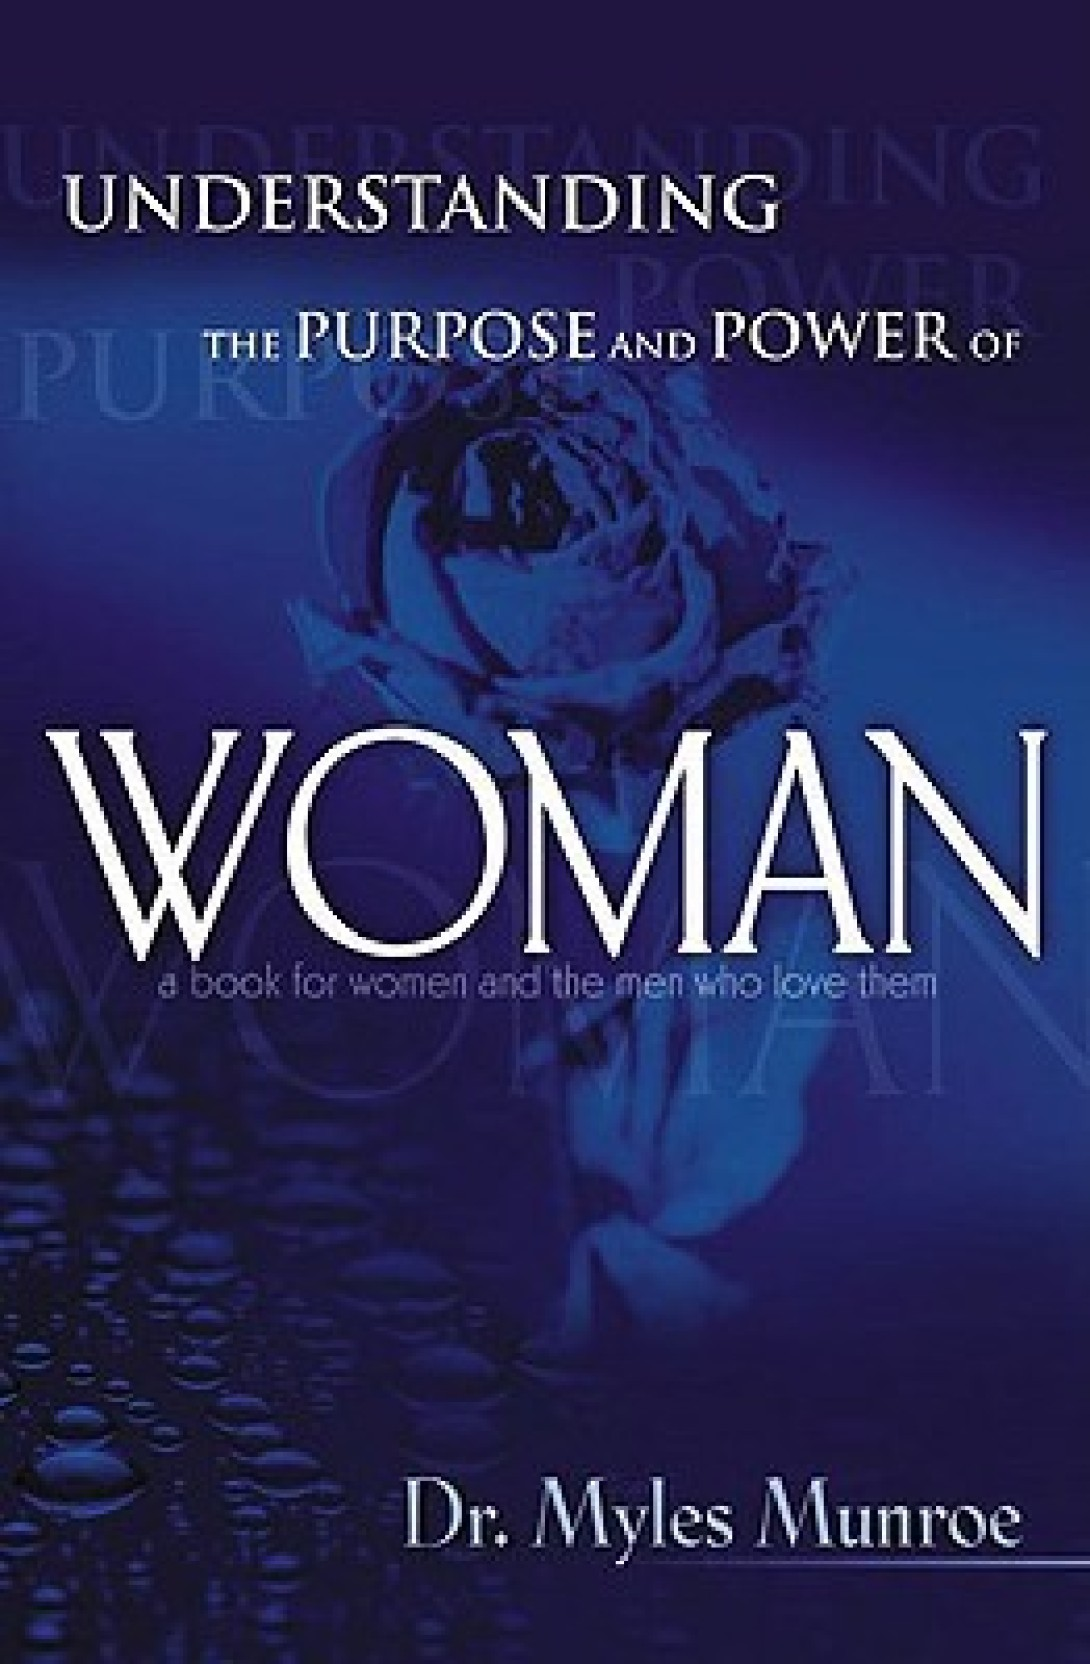 Understanding the Purpose and Power of Woman. Share